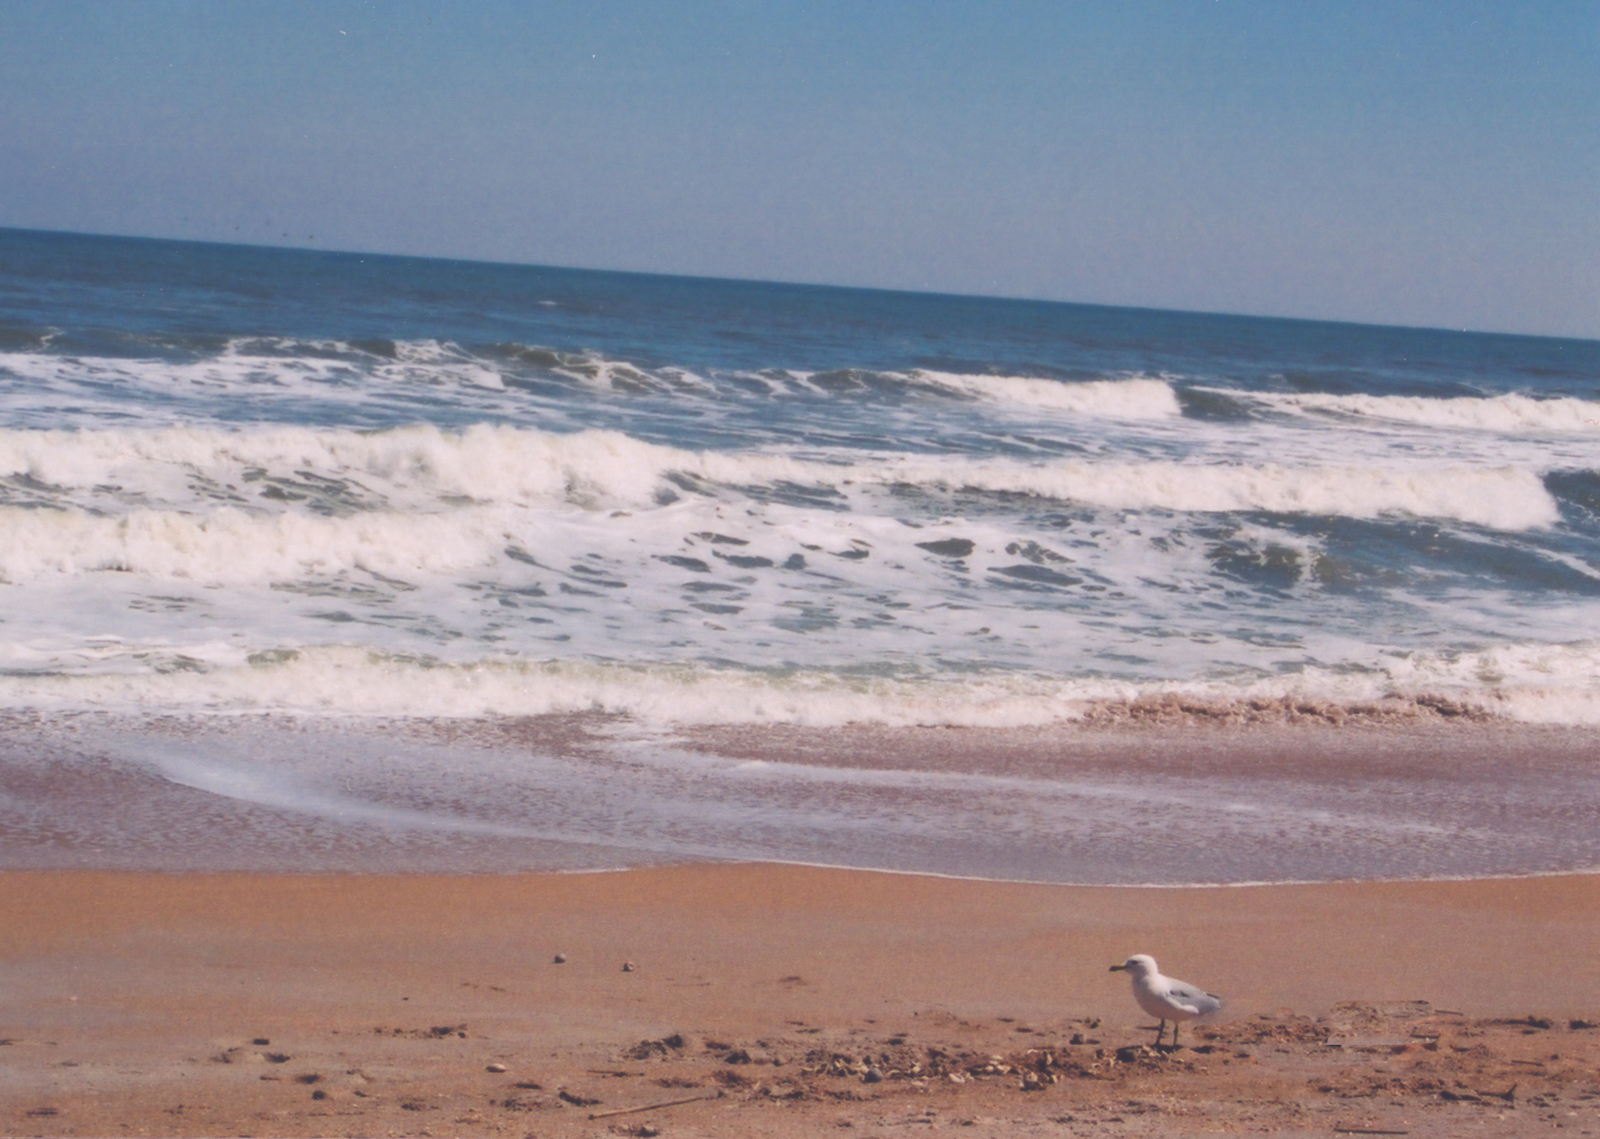 A1A Scenic and Historic Coastal Byway - A Seagull Out for a Stroll